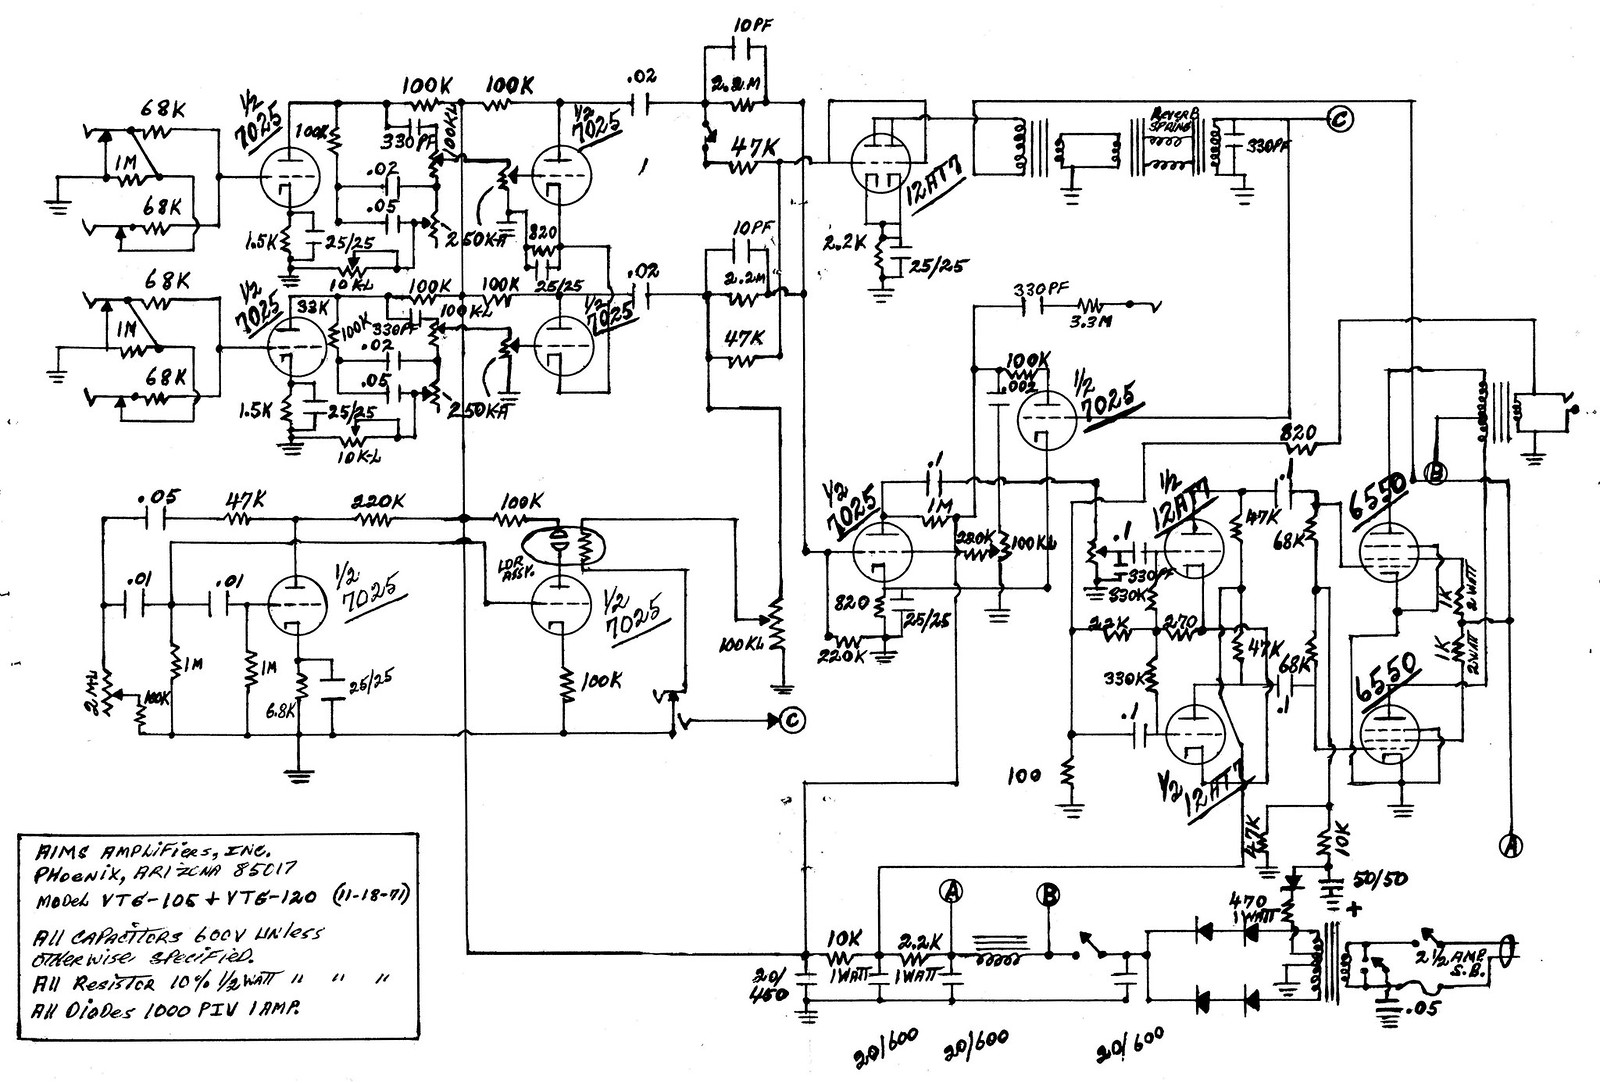 doerr electric motor lr24684 wiring diagram radio dodge neon compressor lr22132 schematic library 115v 14628046201 1b8df4668e h single phase